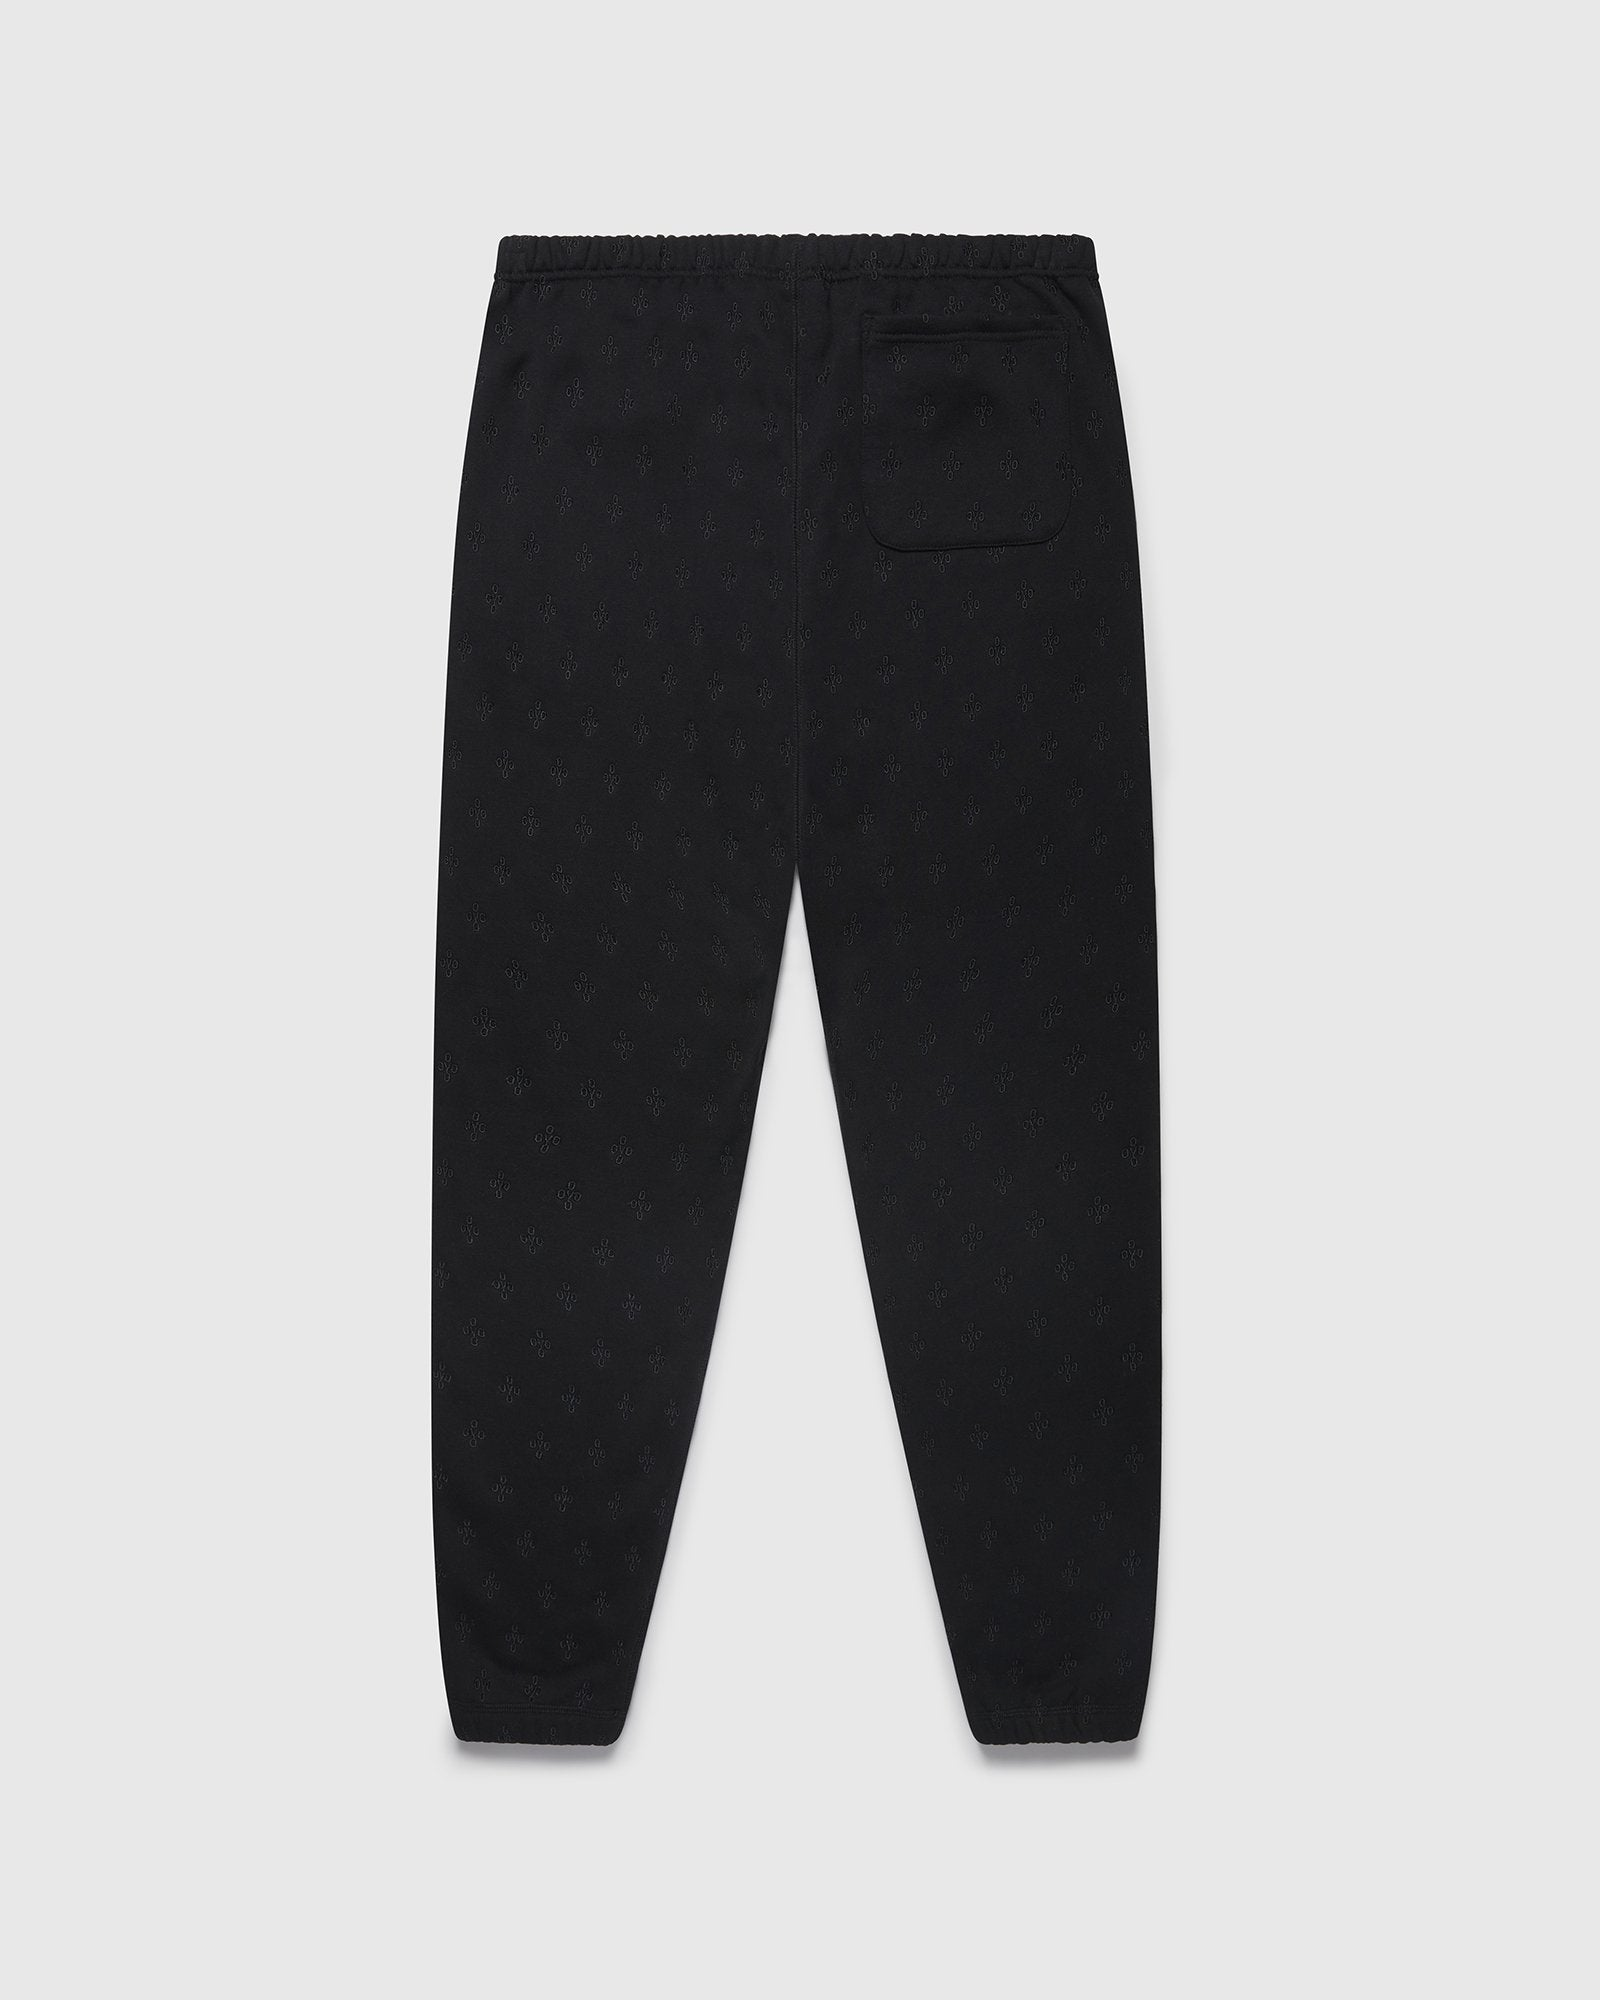 MONOGRAM SWEATPANT - BLACK IMAGE #2